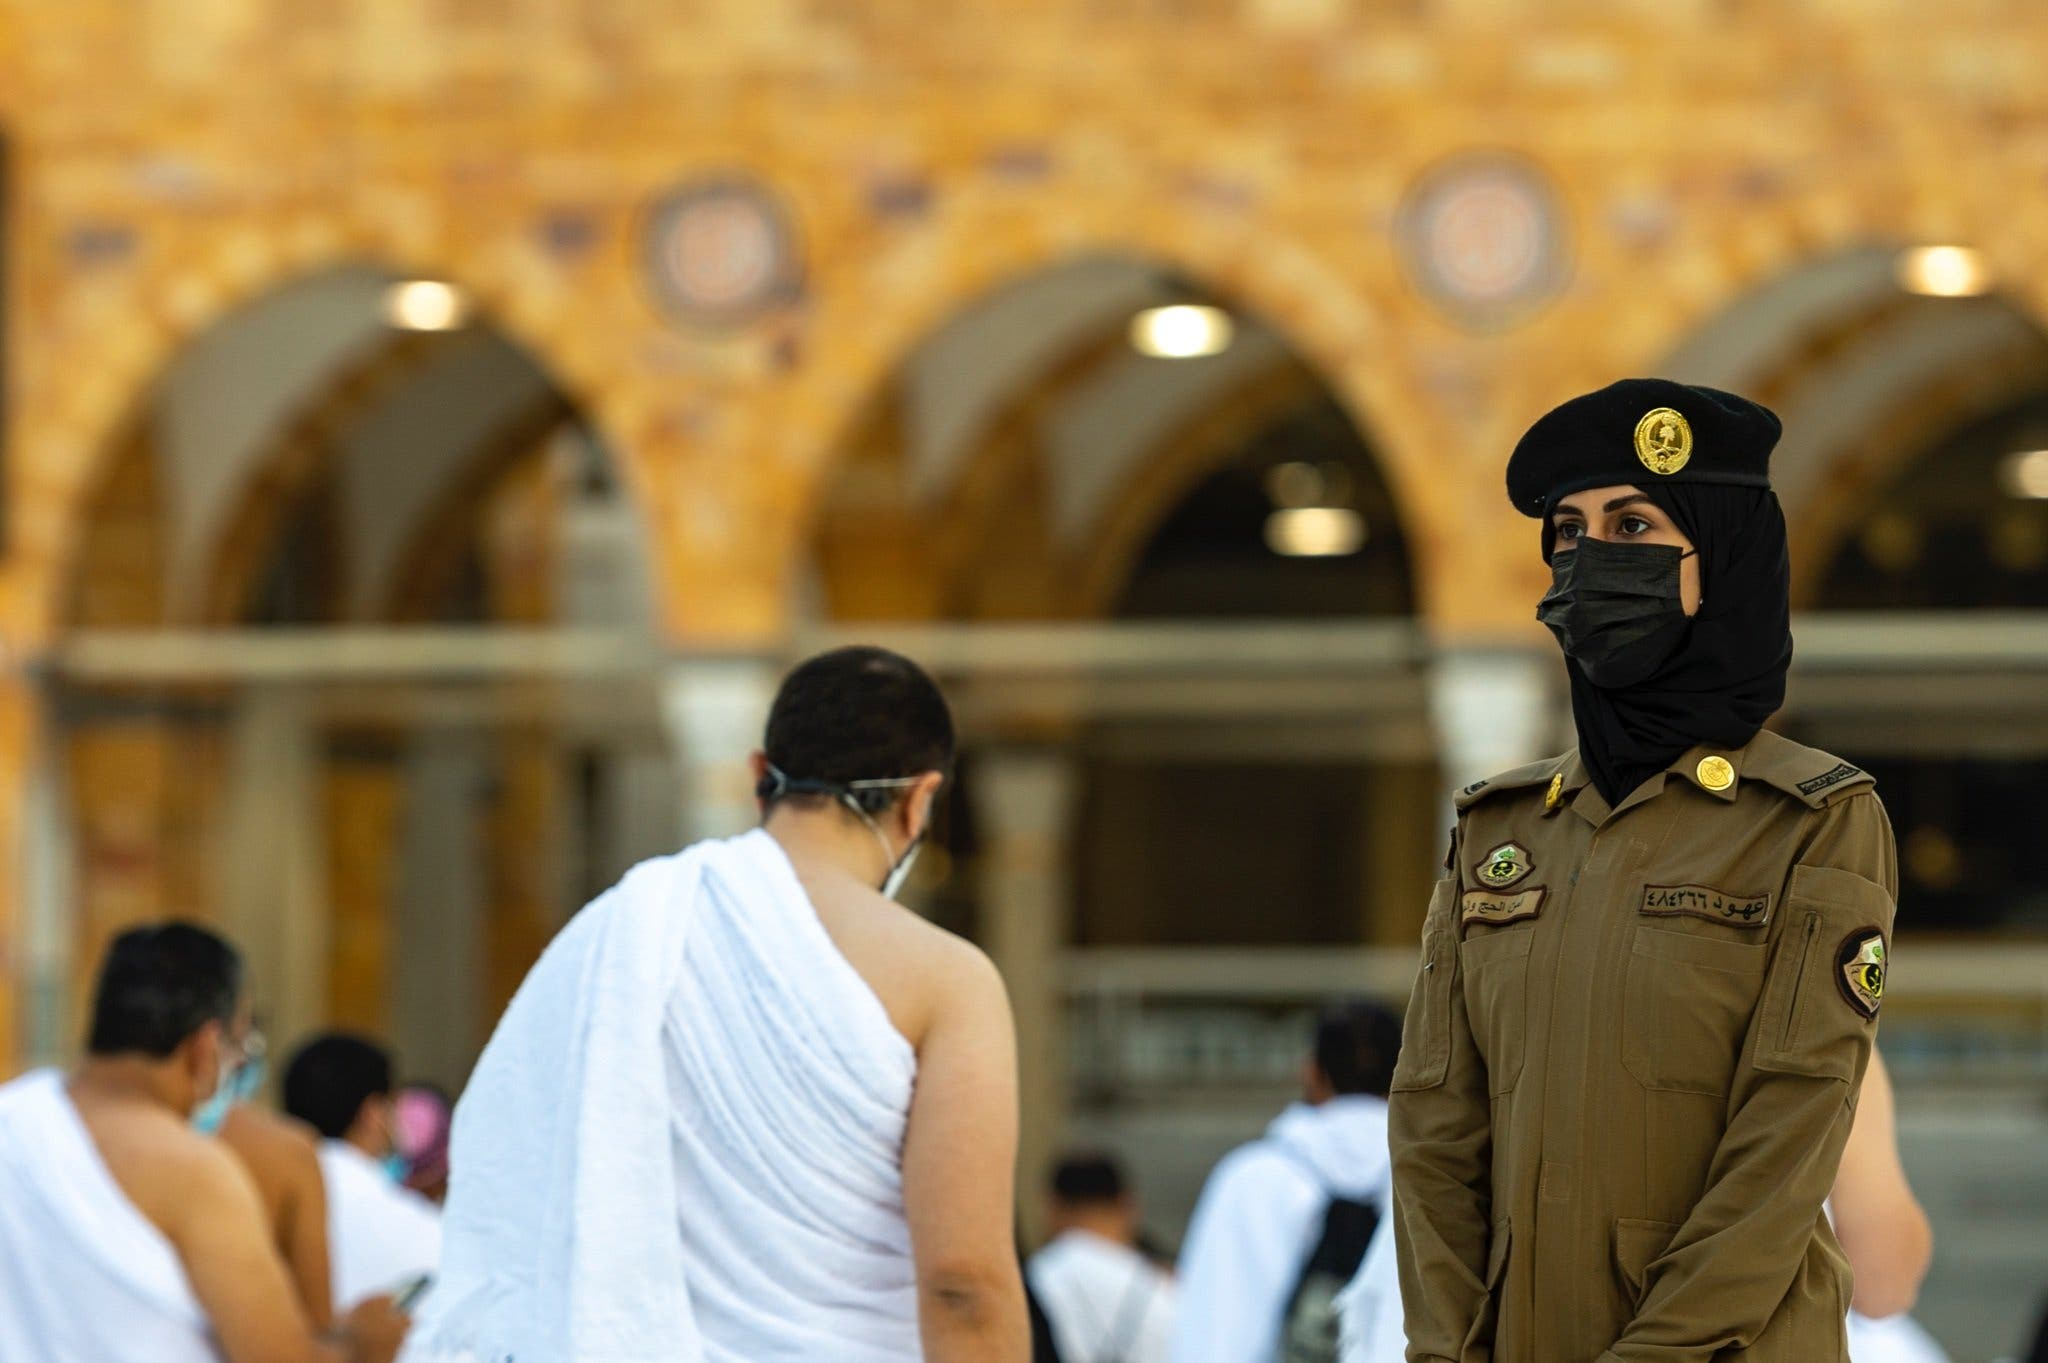 Photos of a Saudi female police officer supervising Umrah pilgrims during the holy month of Ramadan in Saudi Arabia's Mecca. (SPA)